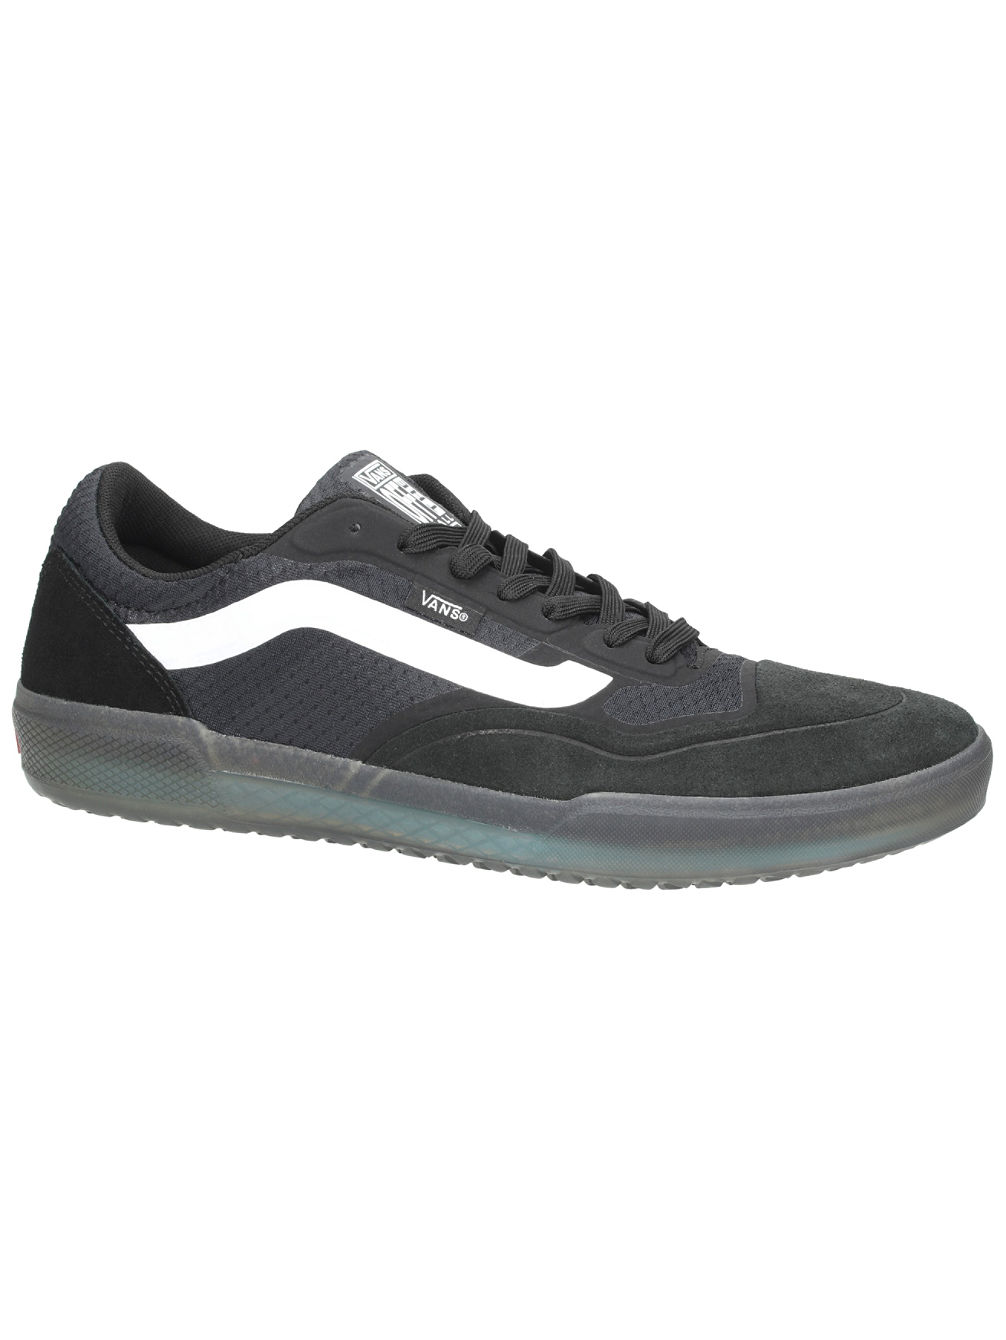 new product 9f019 f67b3 AVE Pro Skate Shoes